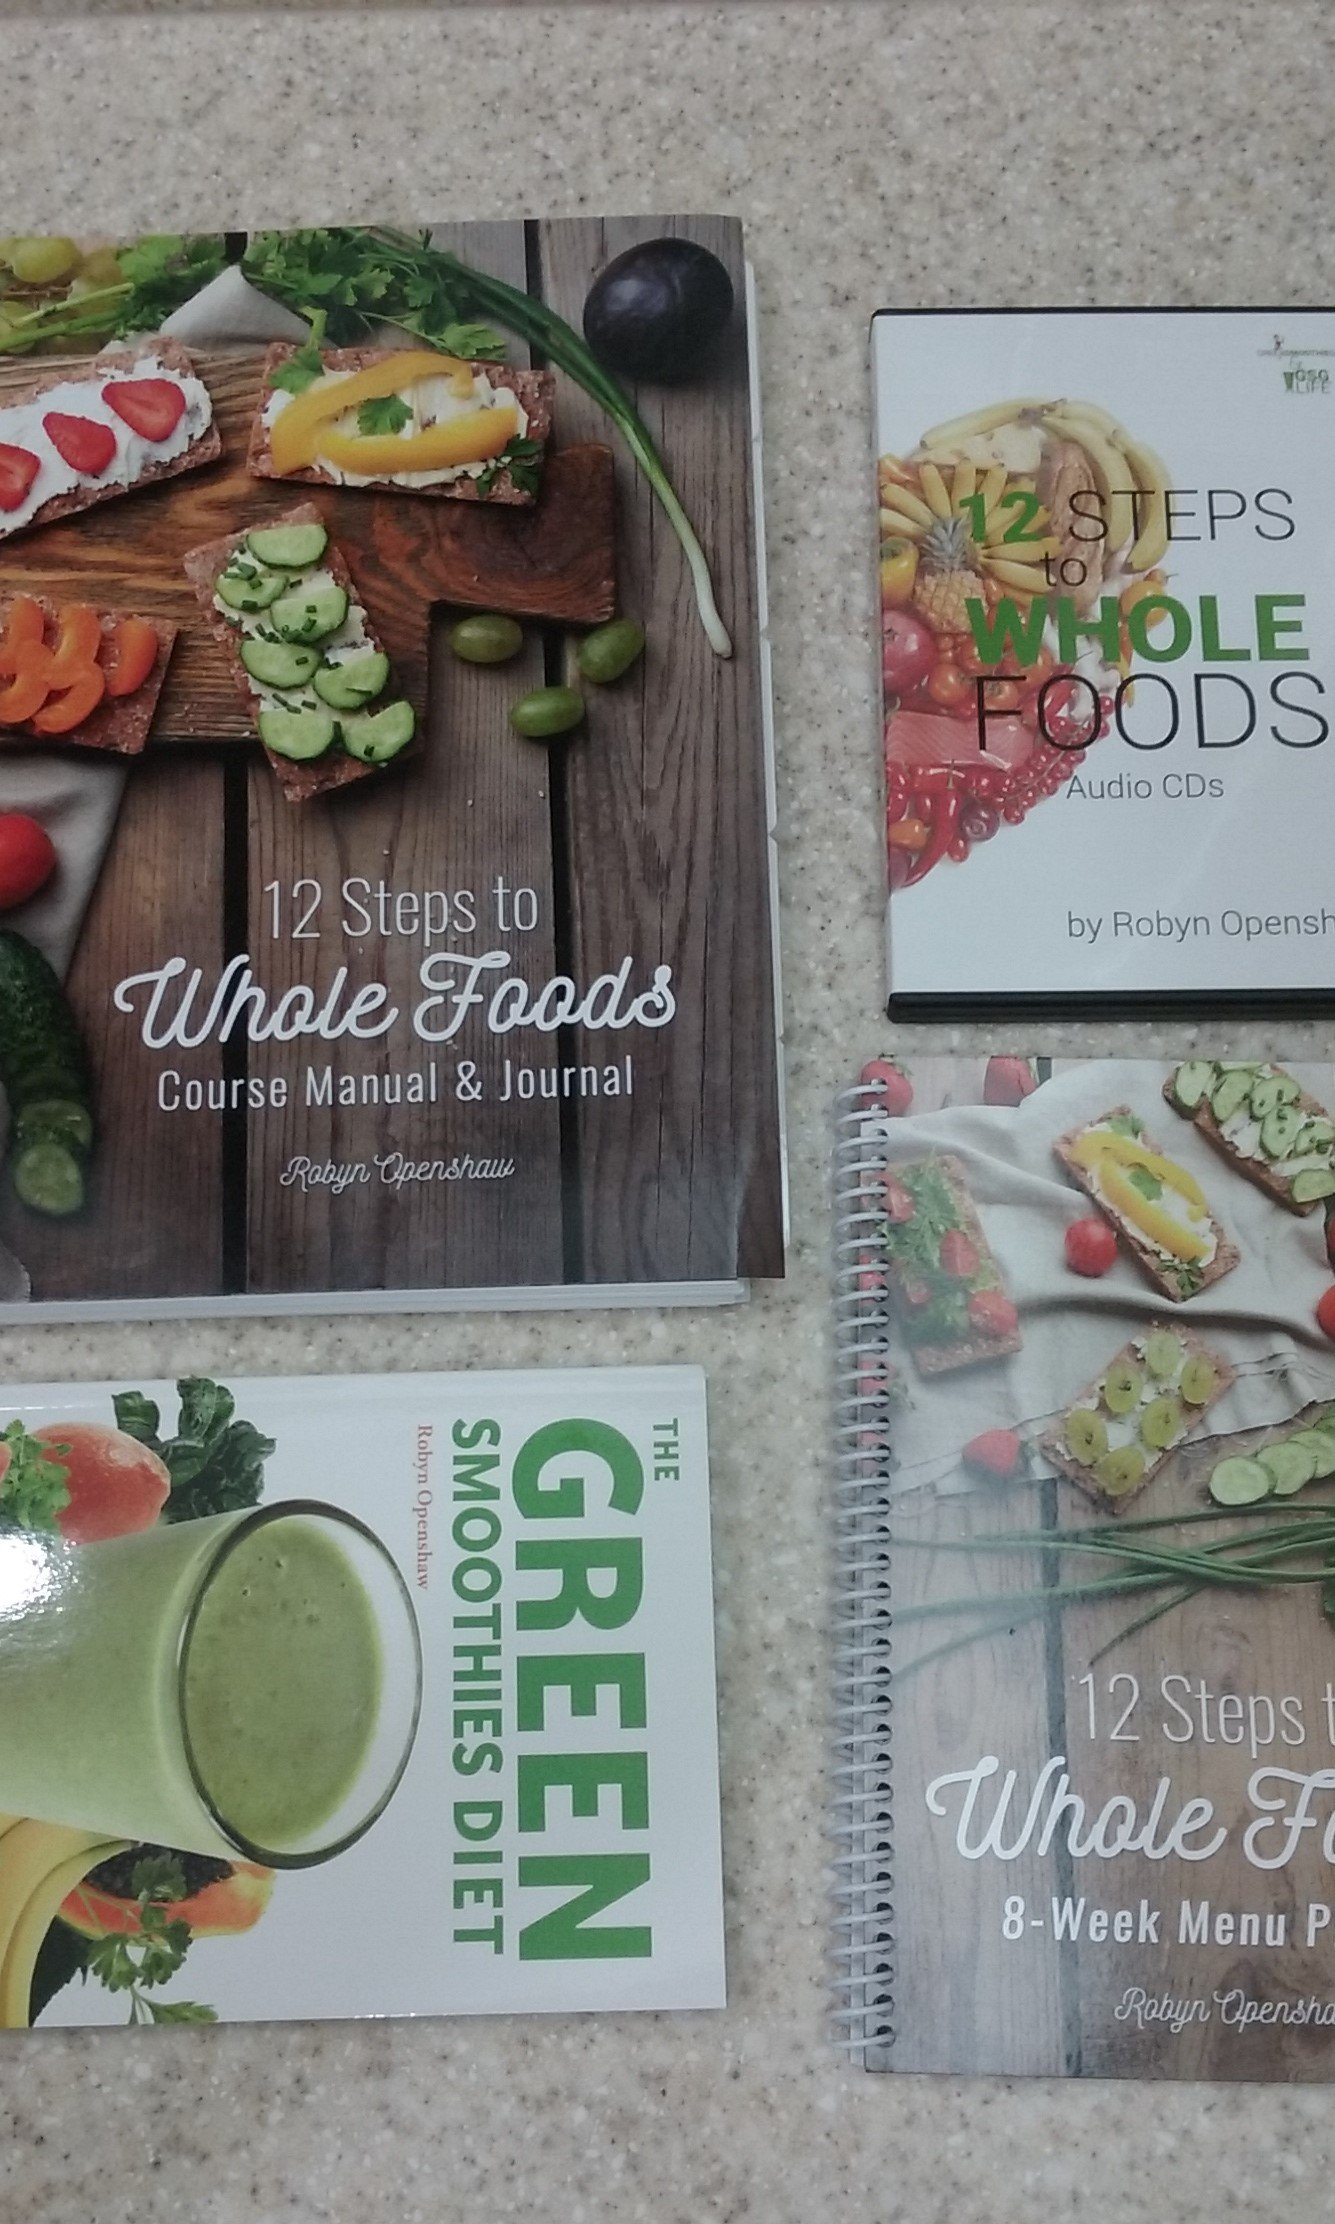 12 Steps to Whole Foods Complete Course (The complete 12 Steps to Whole  Foods with Audio & Videos): Robyn Openshaw: Amazon.com: Books